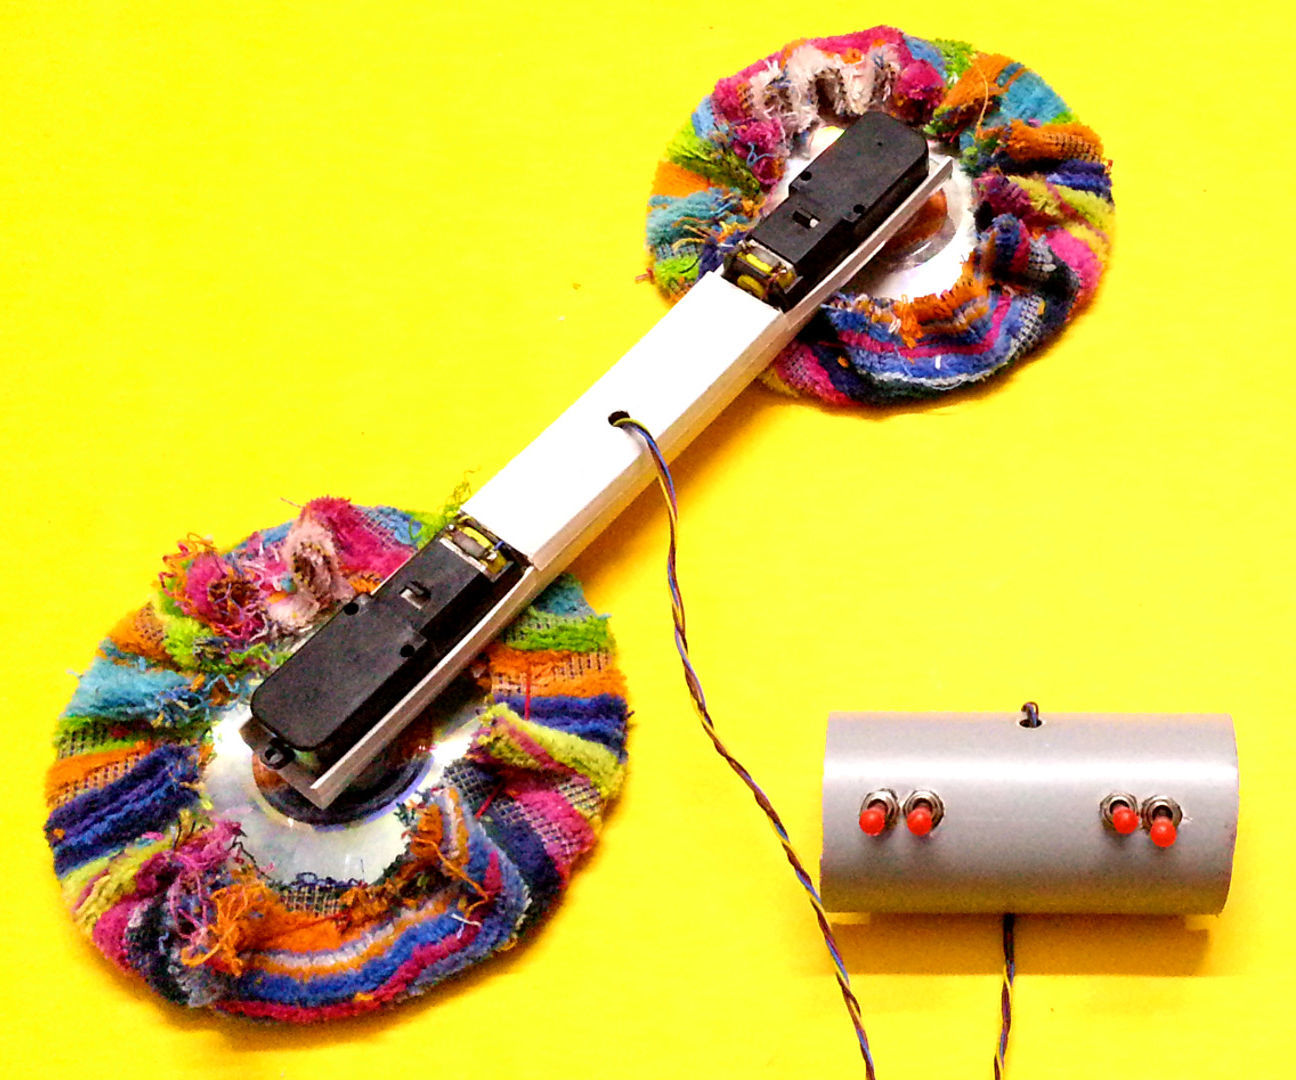 Cool gadgets you can make at home broken solar cell with for Cool gadgets to make at home